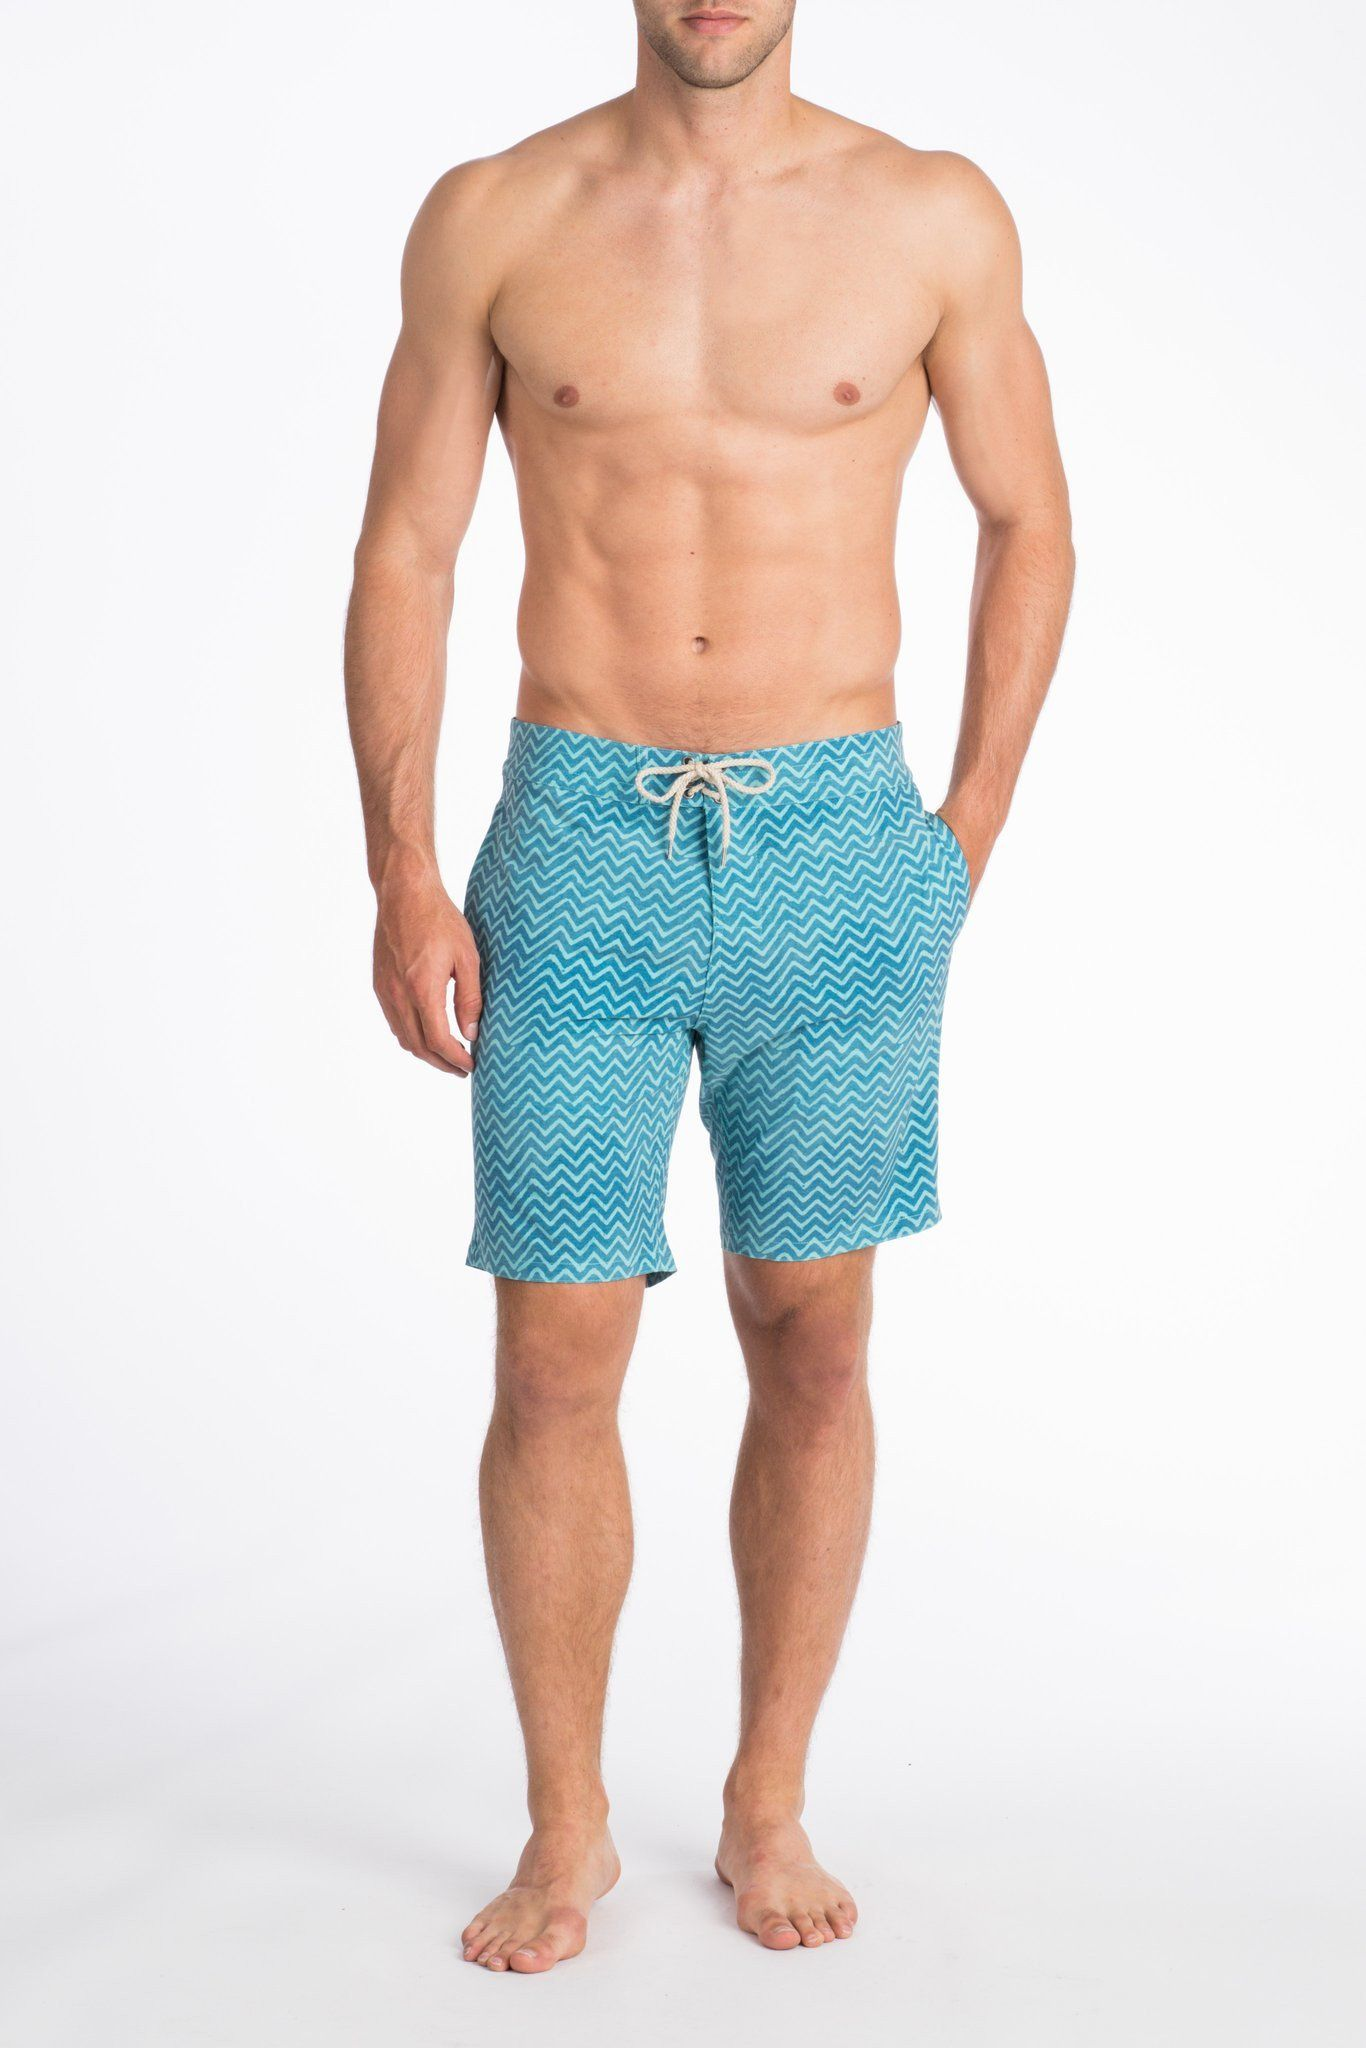 05eb82d37b The Classic Boardshort features batiks, tribal, and Hawaiian inspired  prints. They are crafted